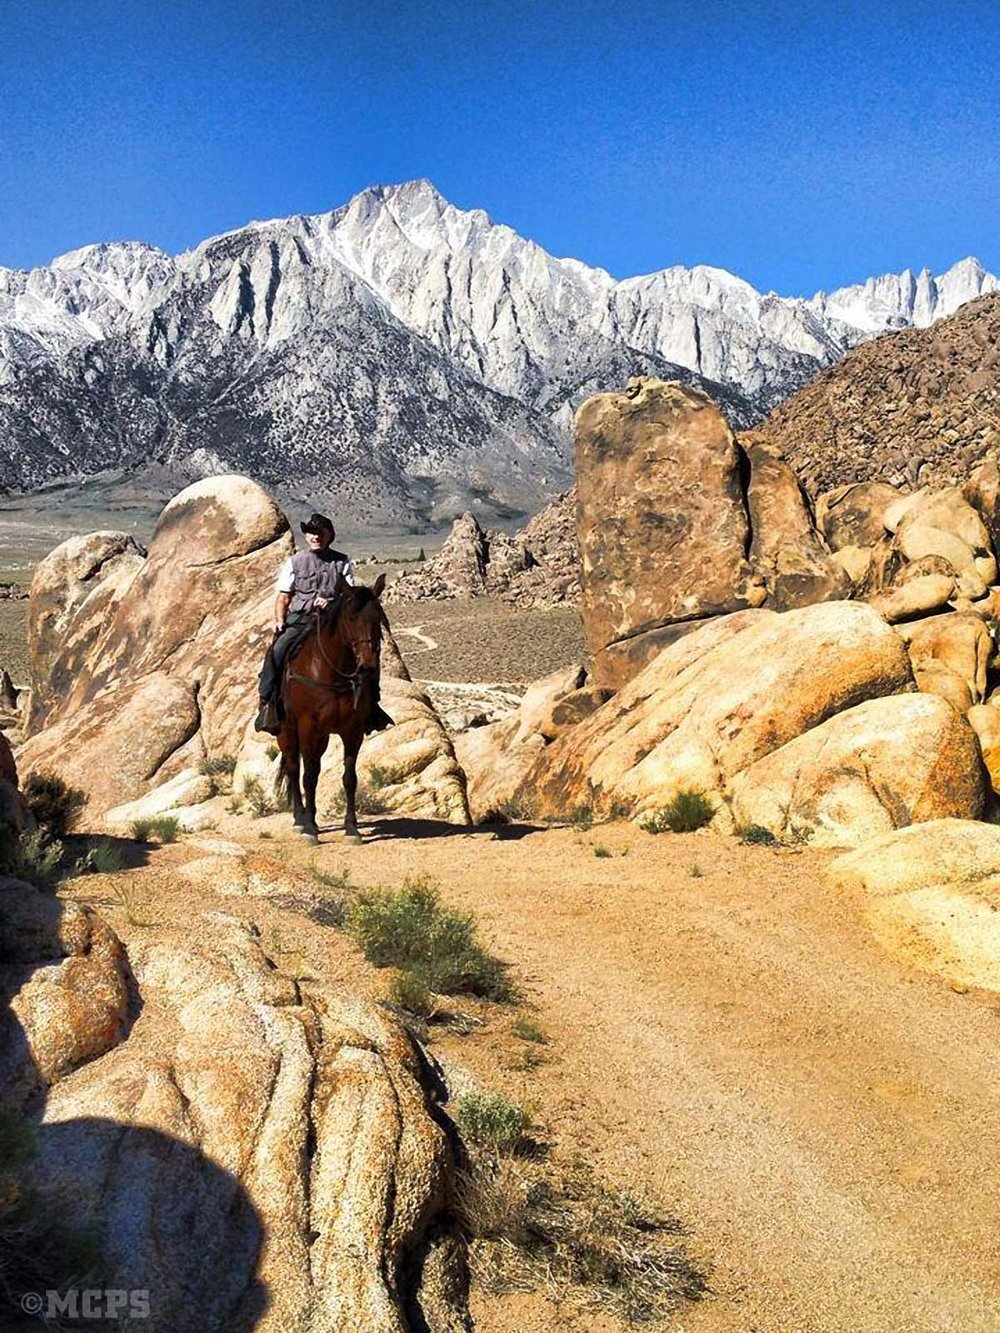 Mt. Williamson provides a dramatic backdrop for a horseman in the Alabama Hills.